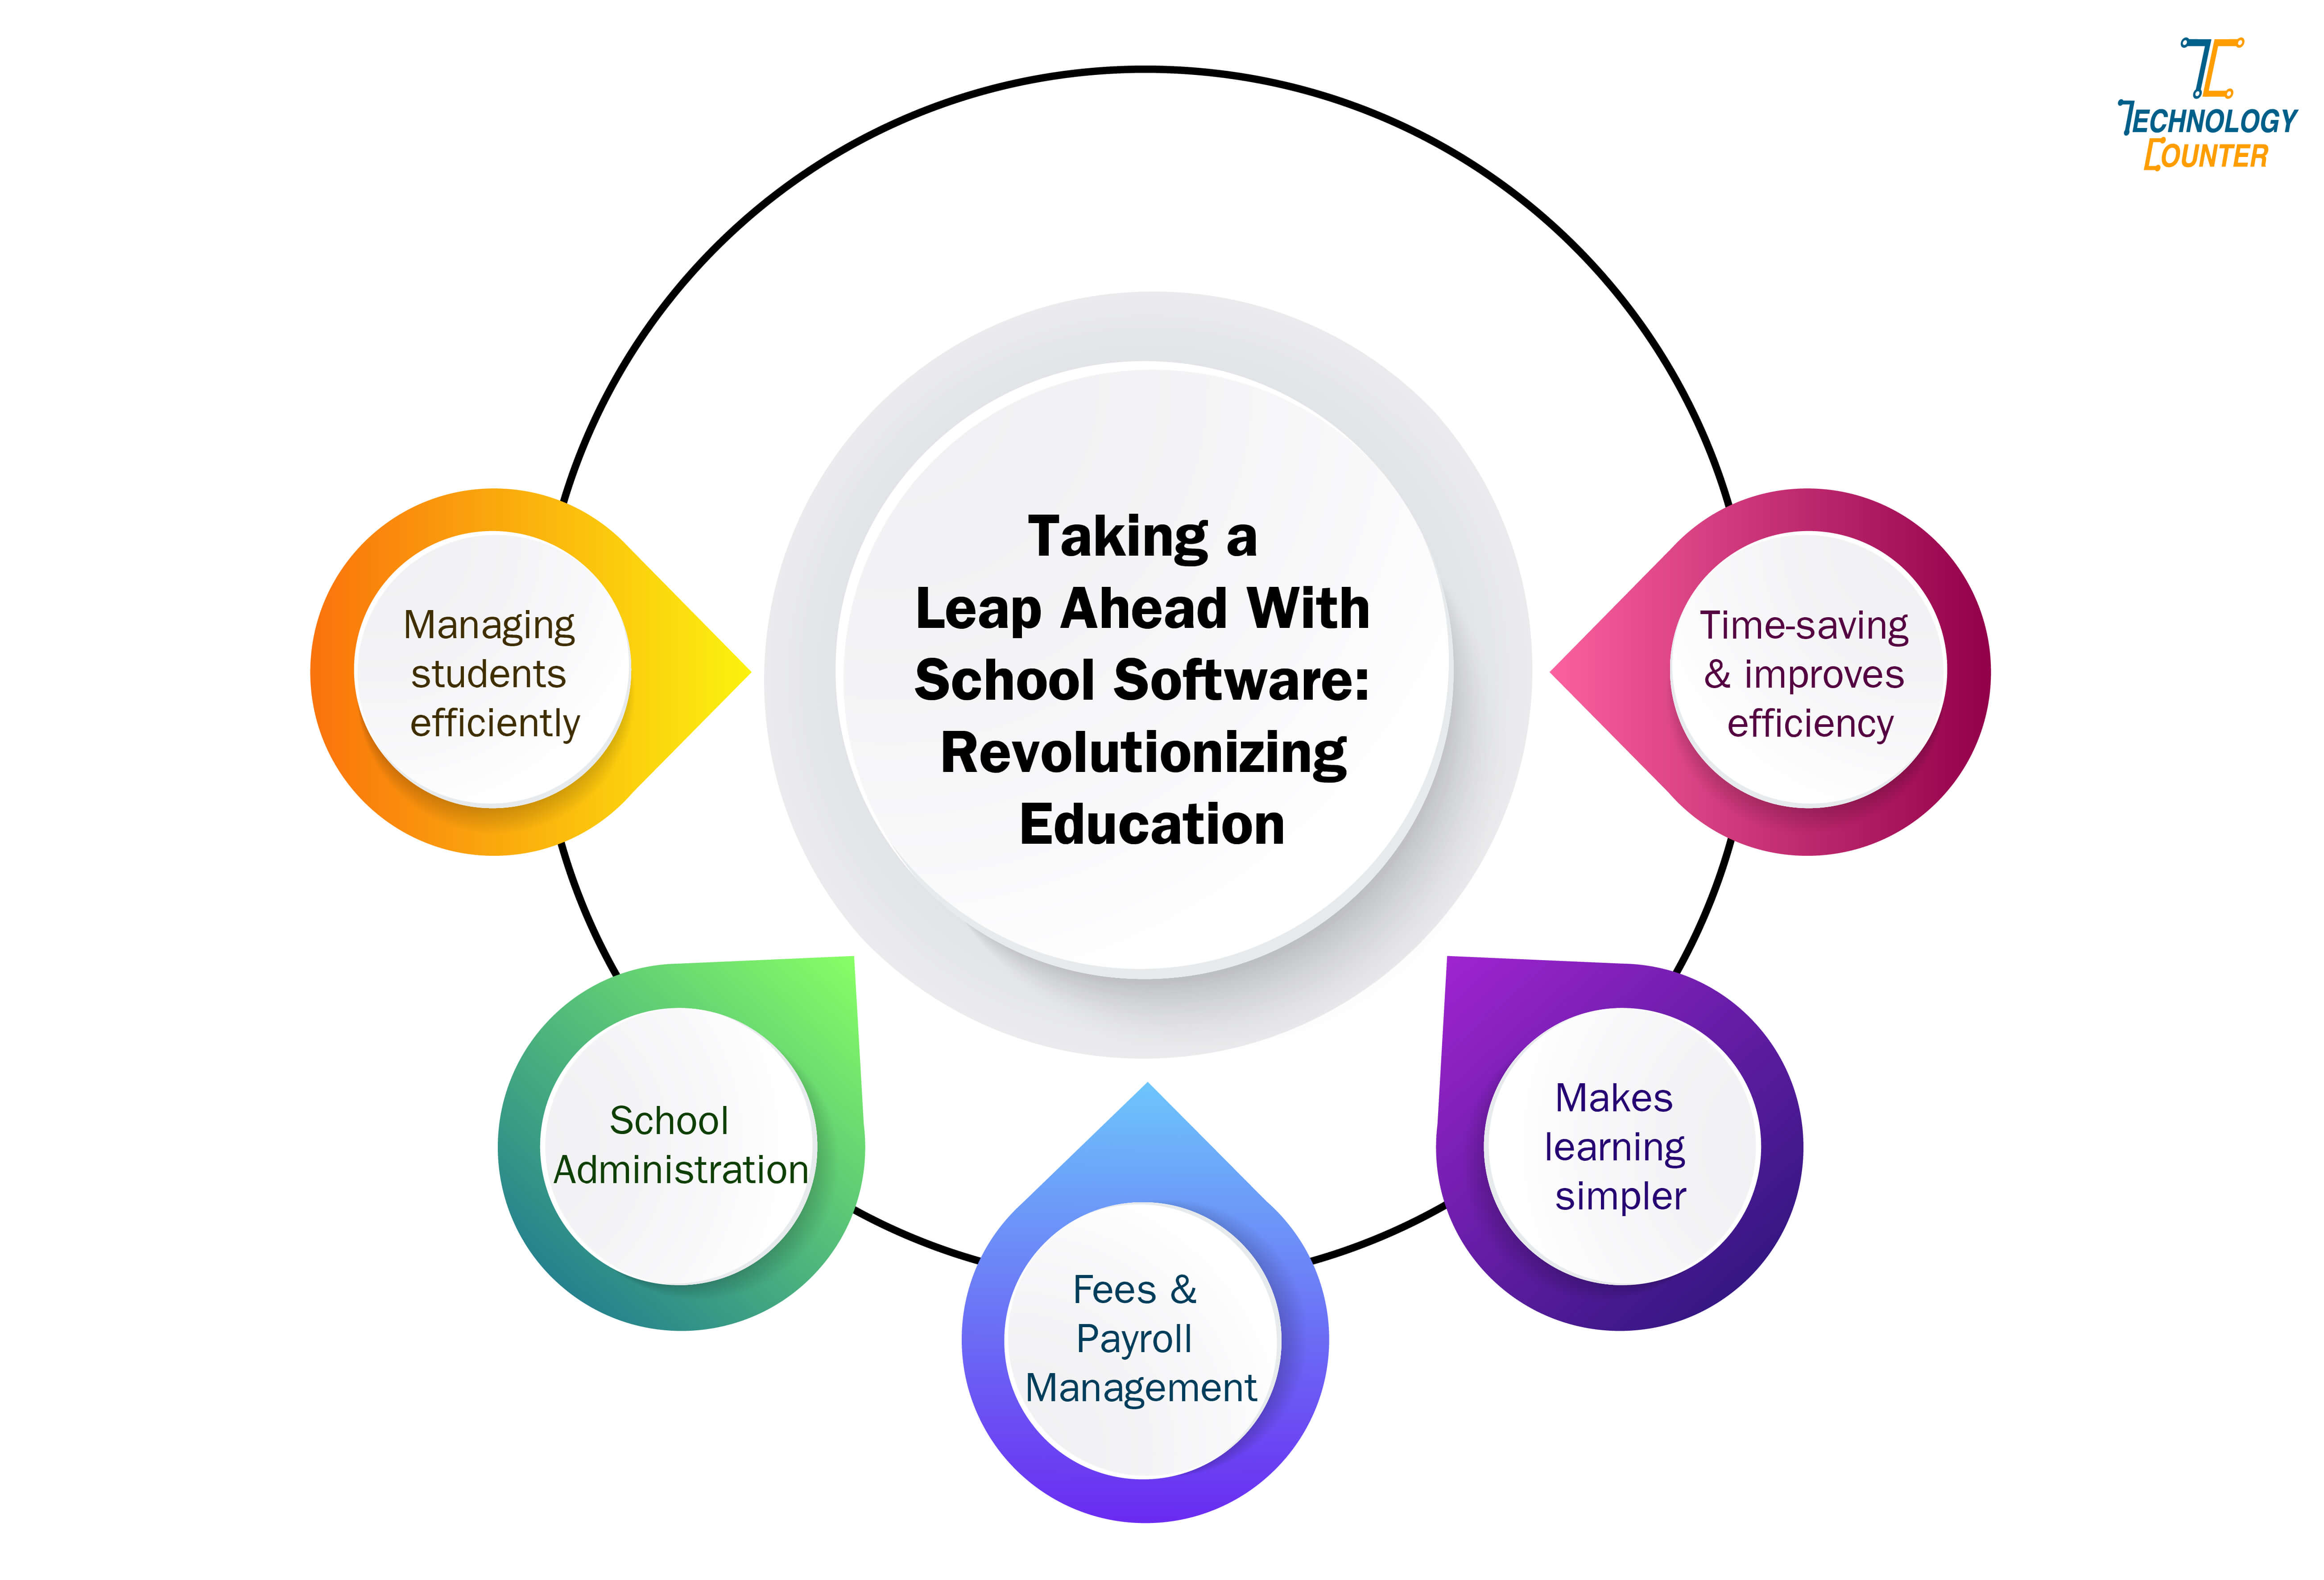 Leap Ahead With School Software Revolutionizing Education